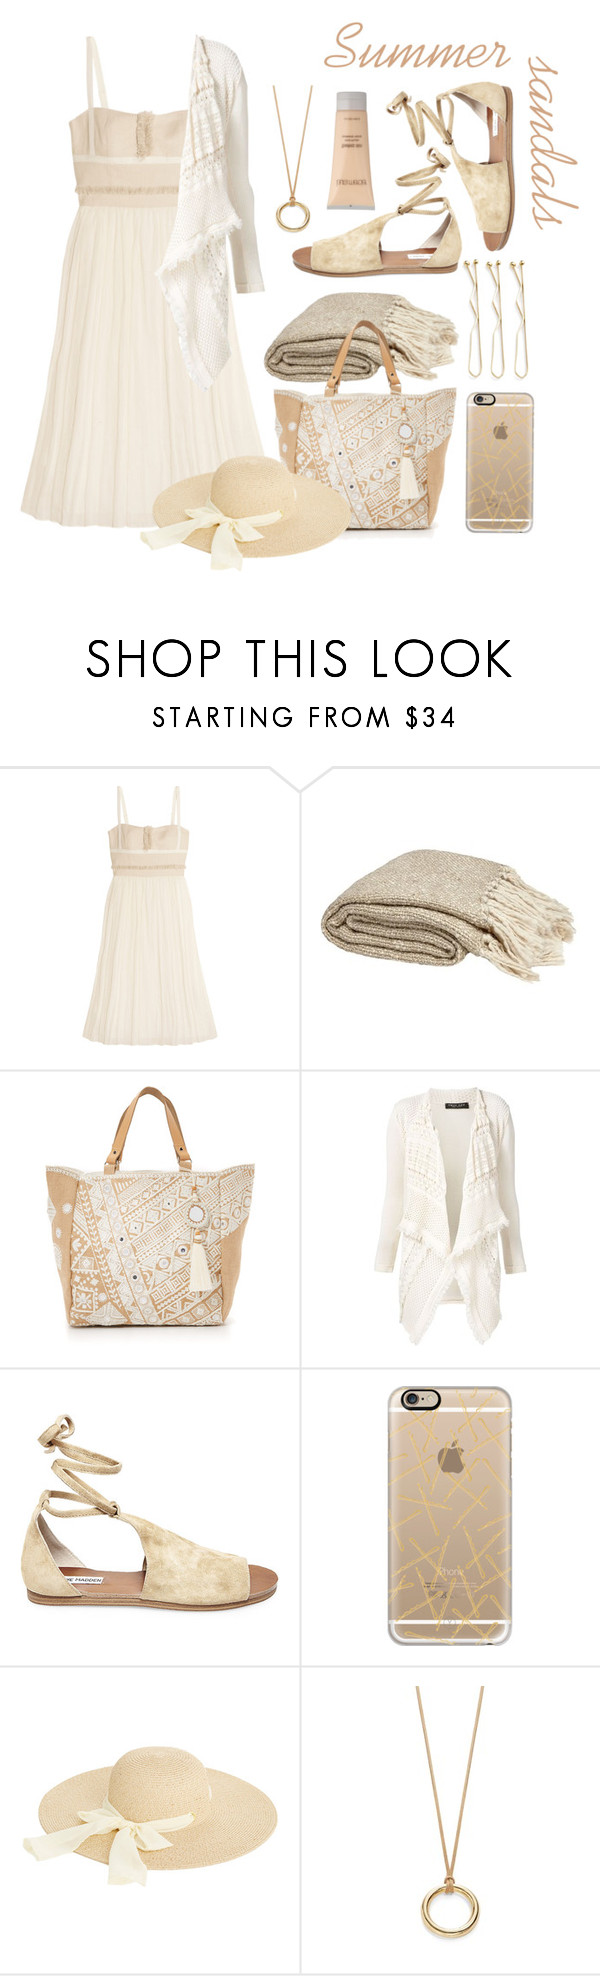 """Untitled #3296"" by kellie-debrandt-mescher ❤ liked on Polyvore featuring Vanessa Bruno, Star Mela, Twin-Set, Steve Madden, Casetify, Grace Lee Designs, Oasis, Design Lab and Laura Mercier"